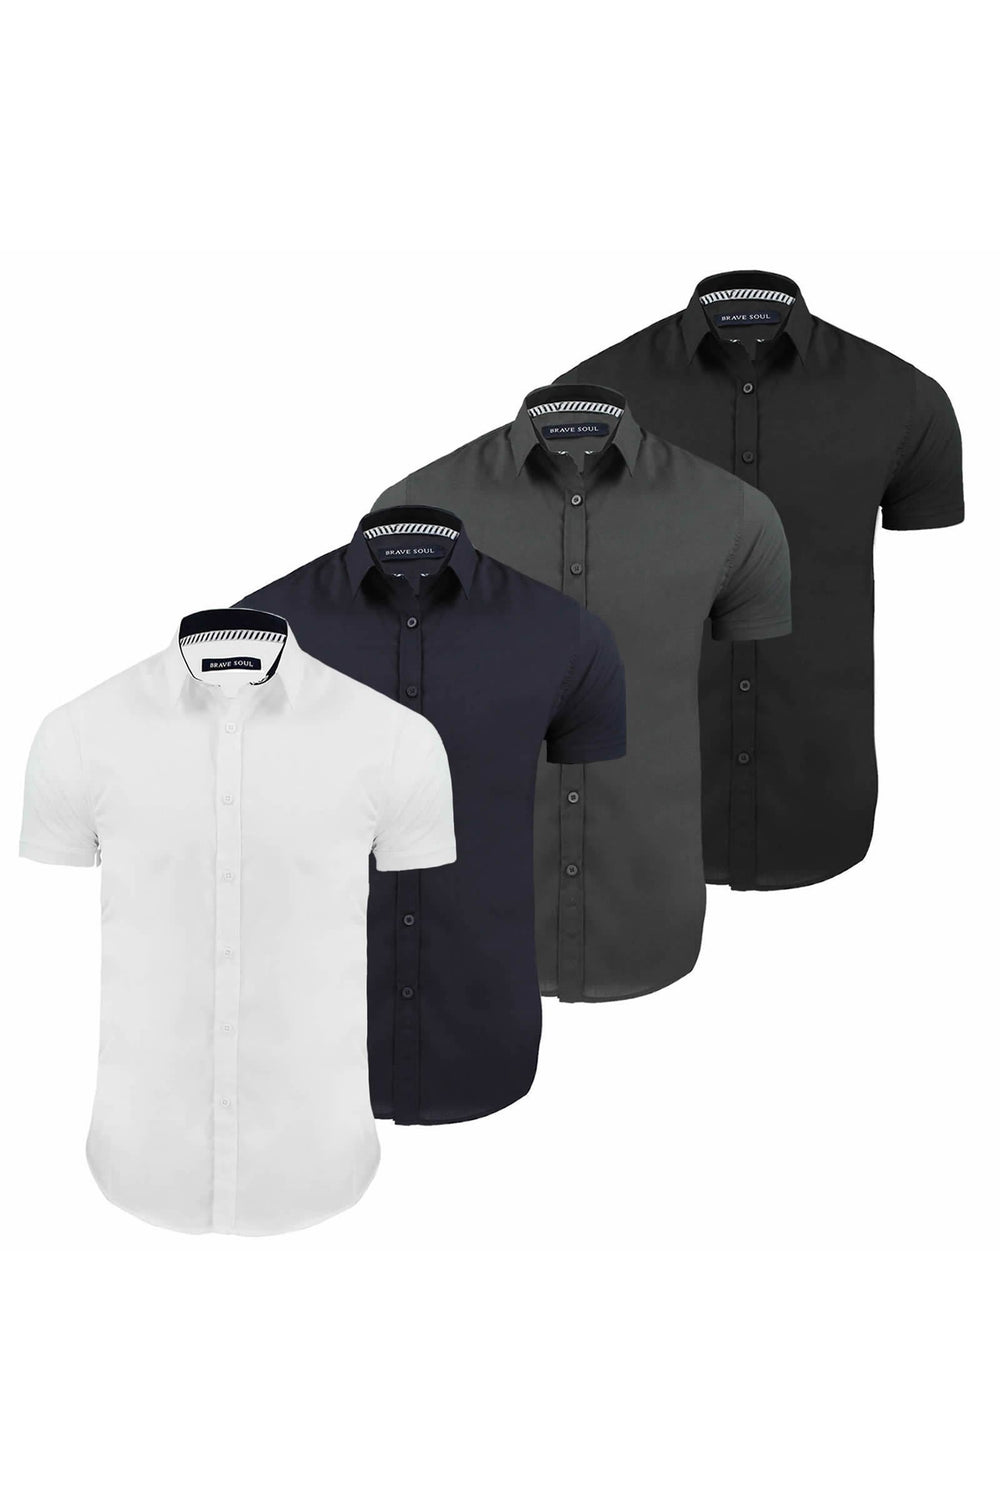 Shirts - Basic Fitted Short Sleeve Shirt Charcoal